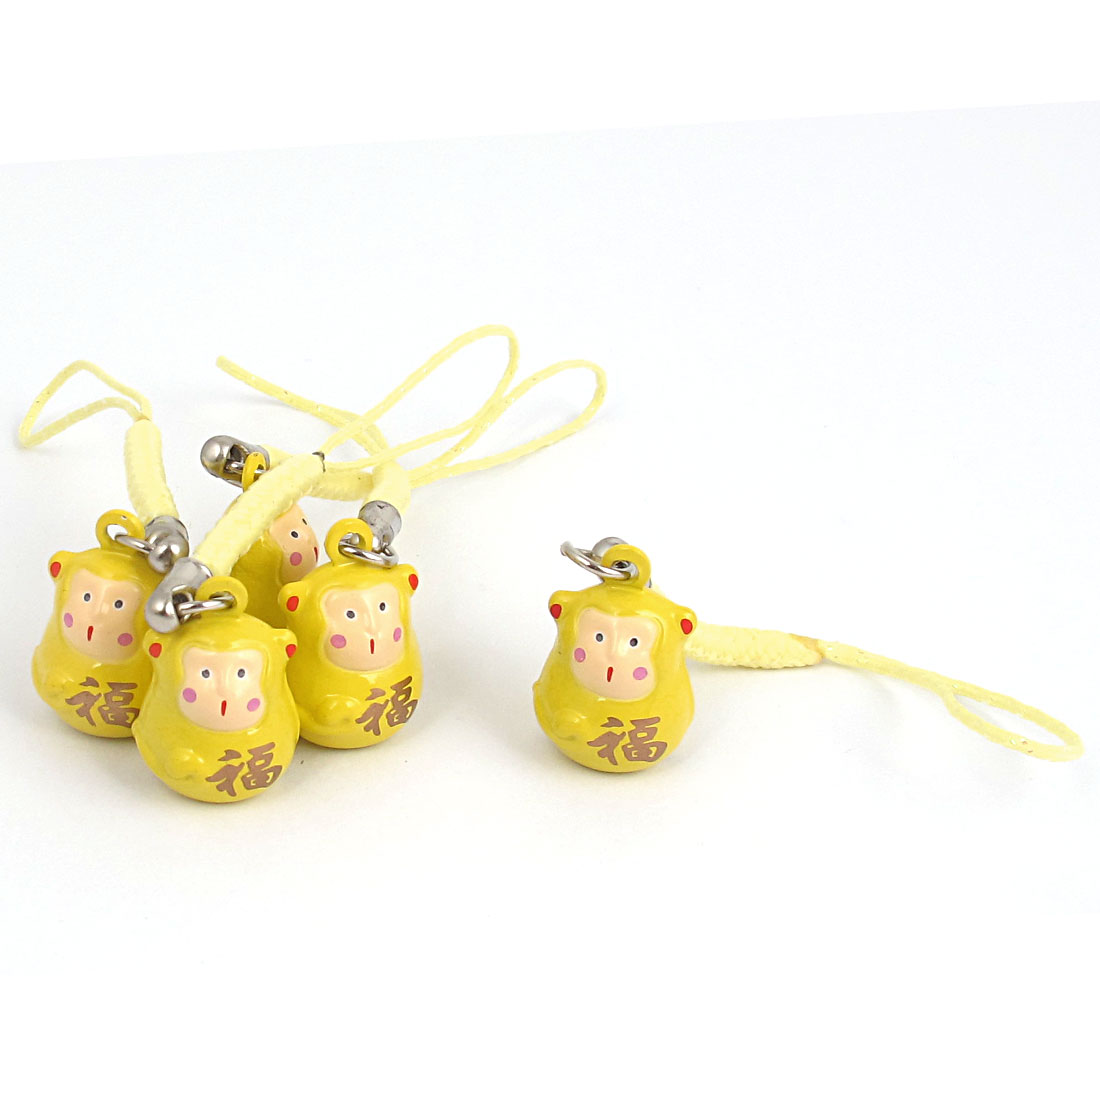 Metal Monkey Cartoon Design Ring Bell Ornament Yellow 18mm Diameter 5 Pcs